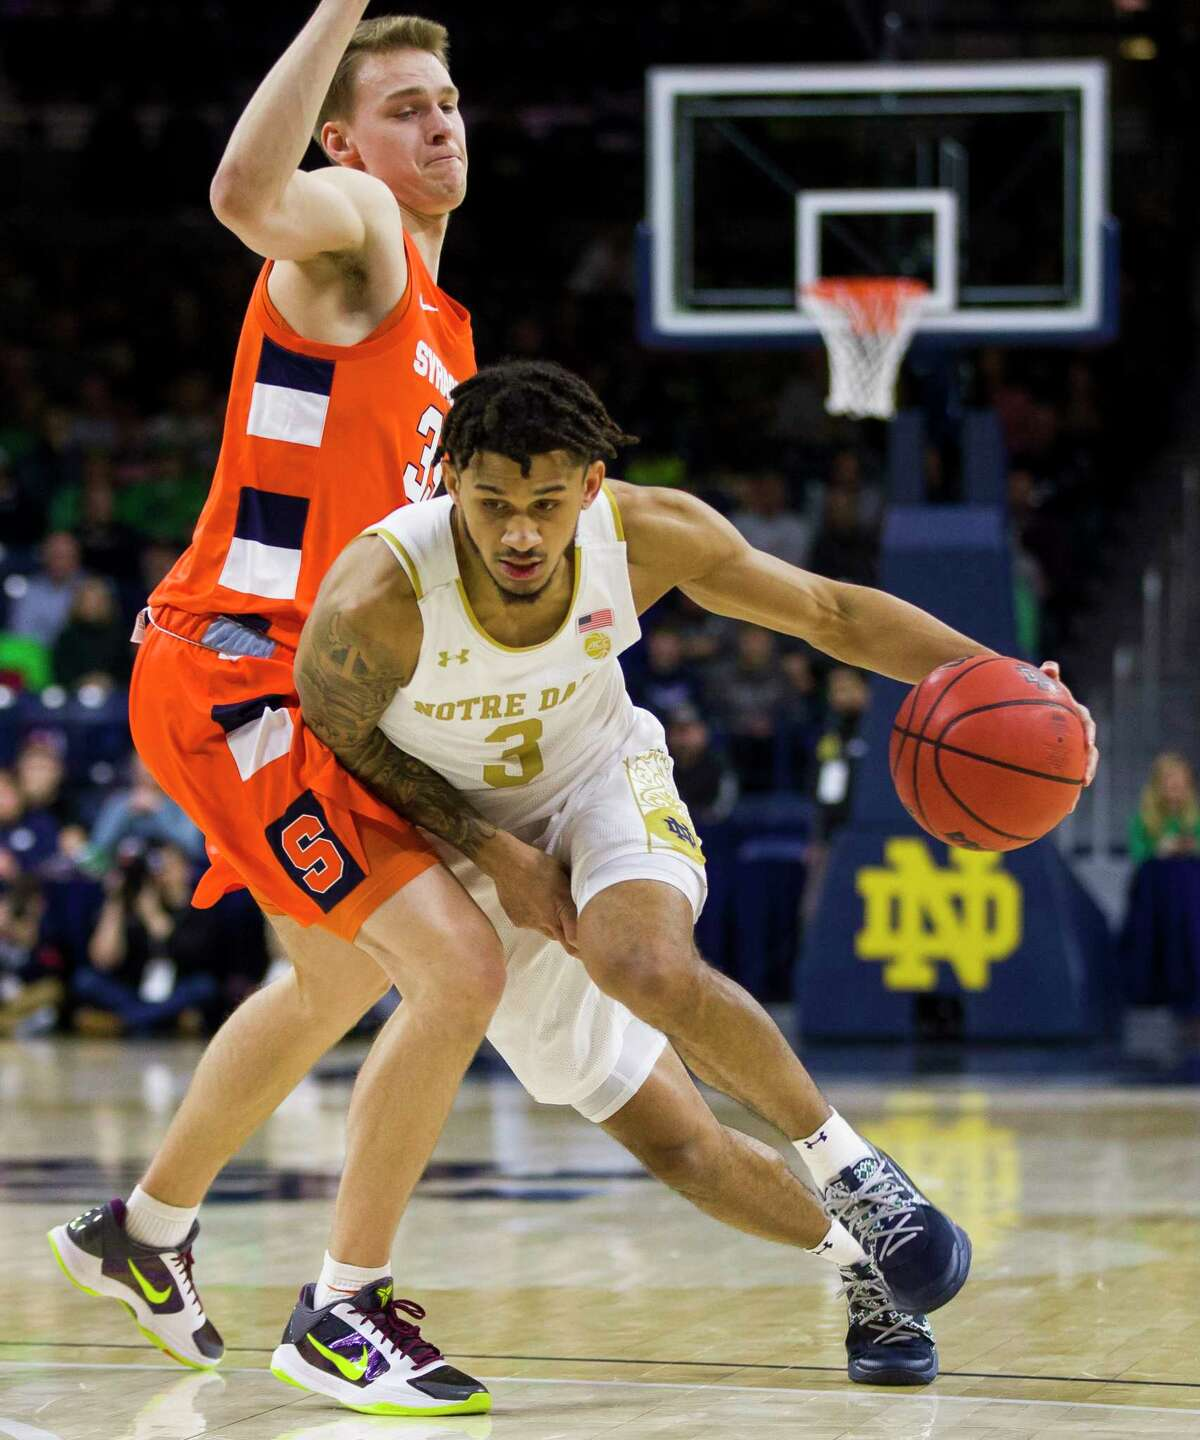 Notre Dame's Prentiss Hubb (3) drives by Syracuse's Buddy BoeheimA (35) during the first half of an NCAA college basketball game Wednesday, Jan. 22, 2020, in South Bend, Ind. (AP Photo/Robert Franklin)